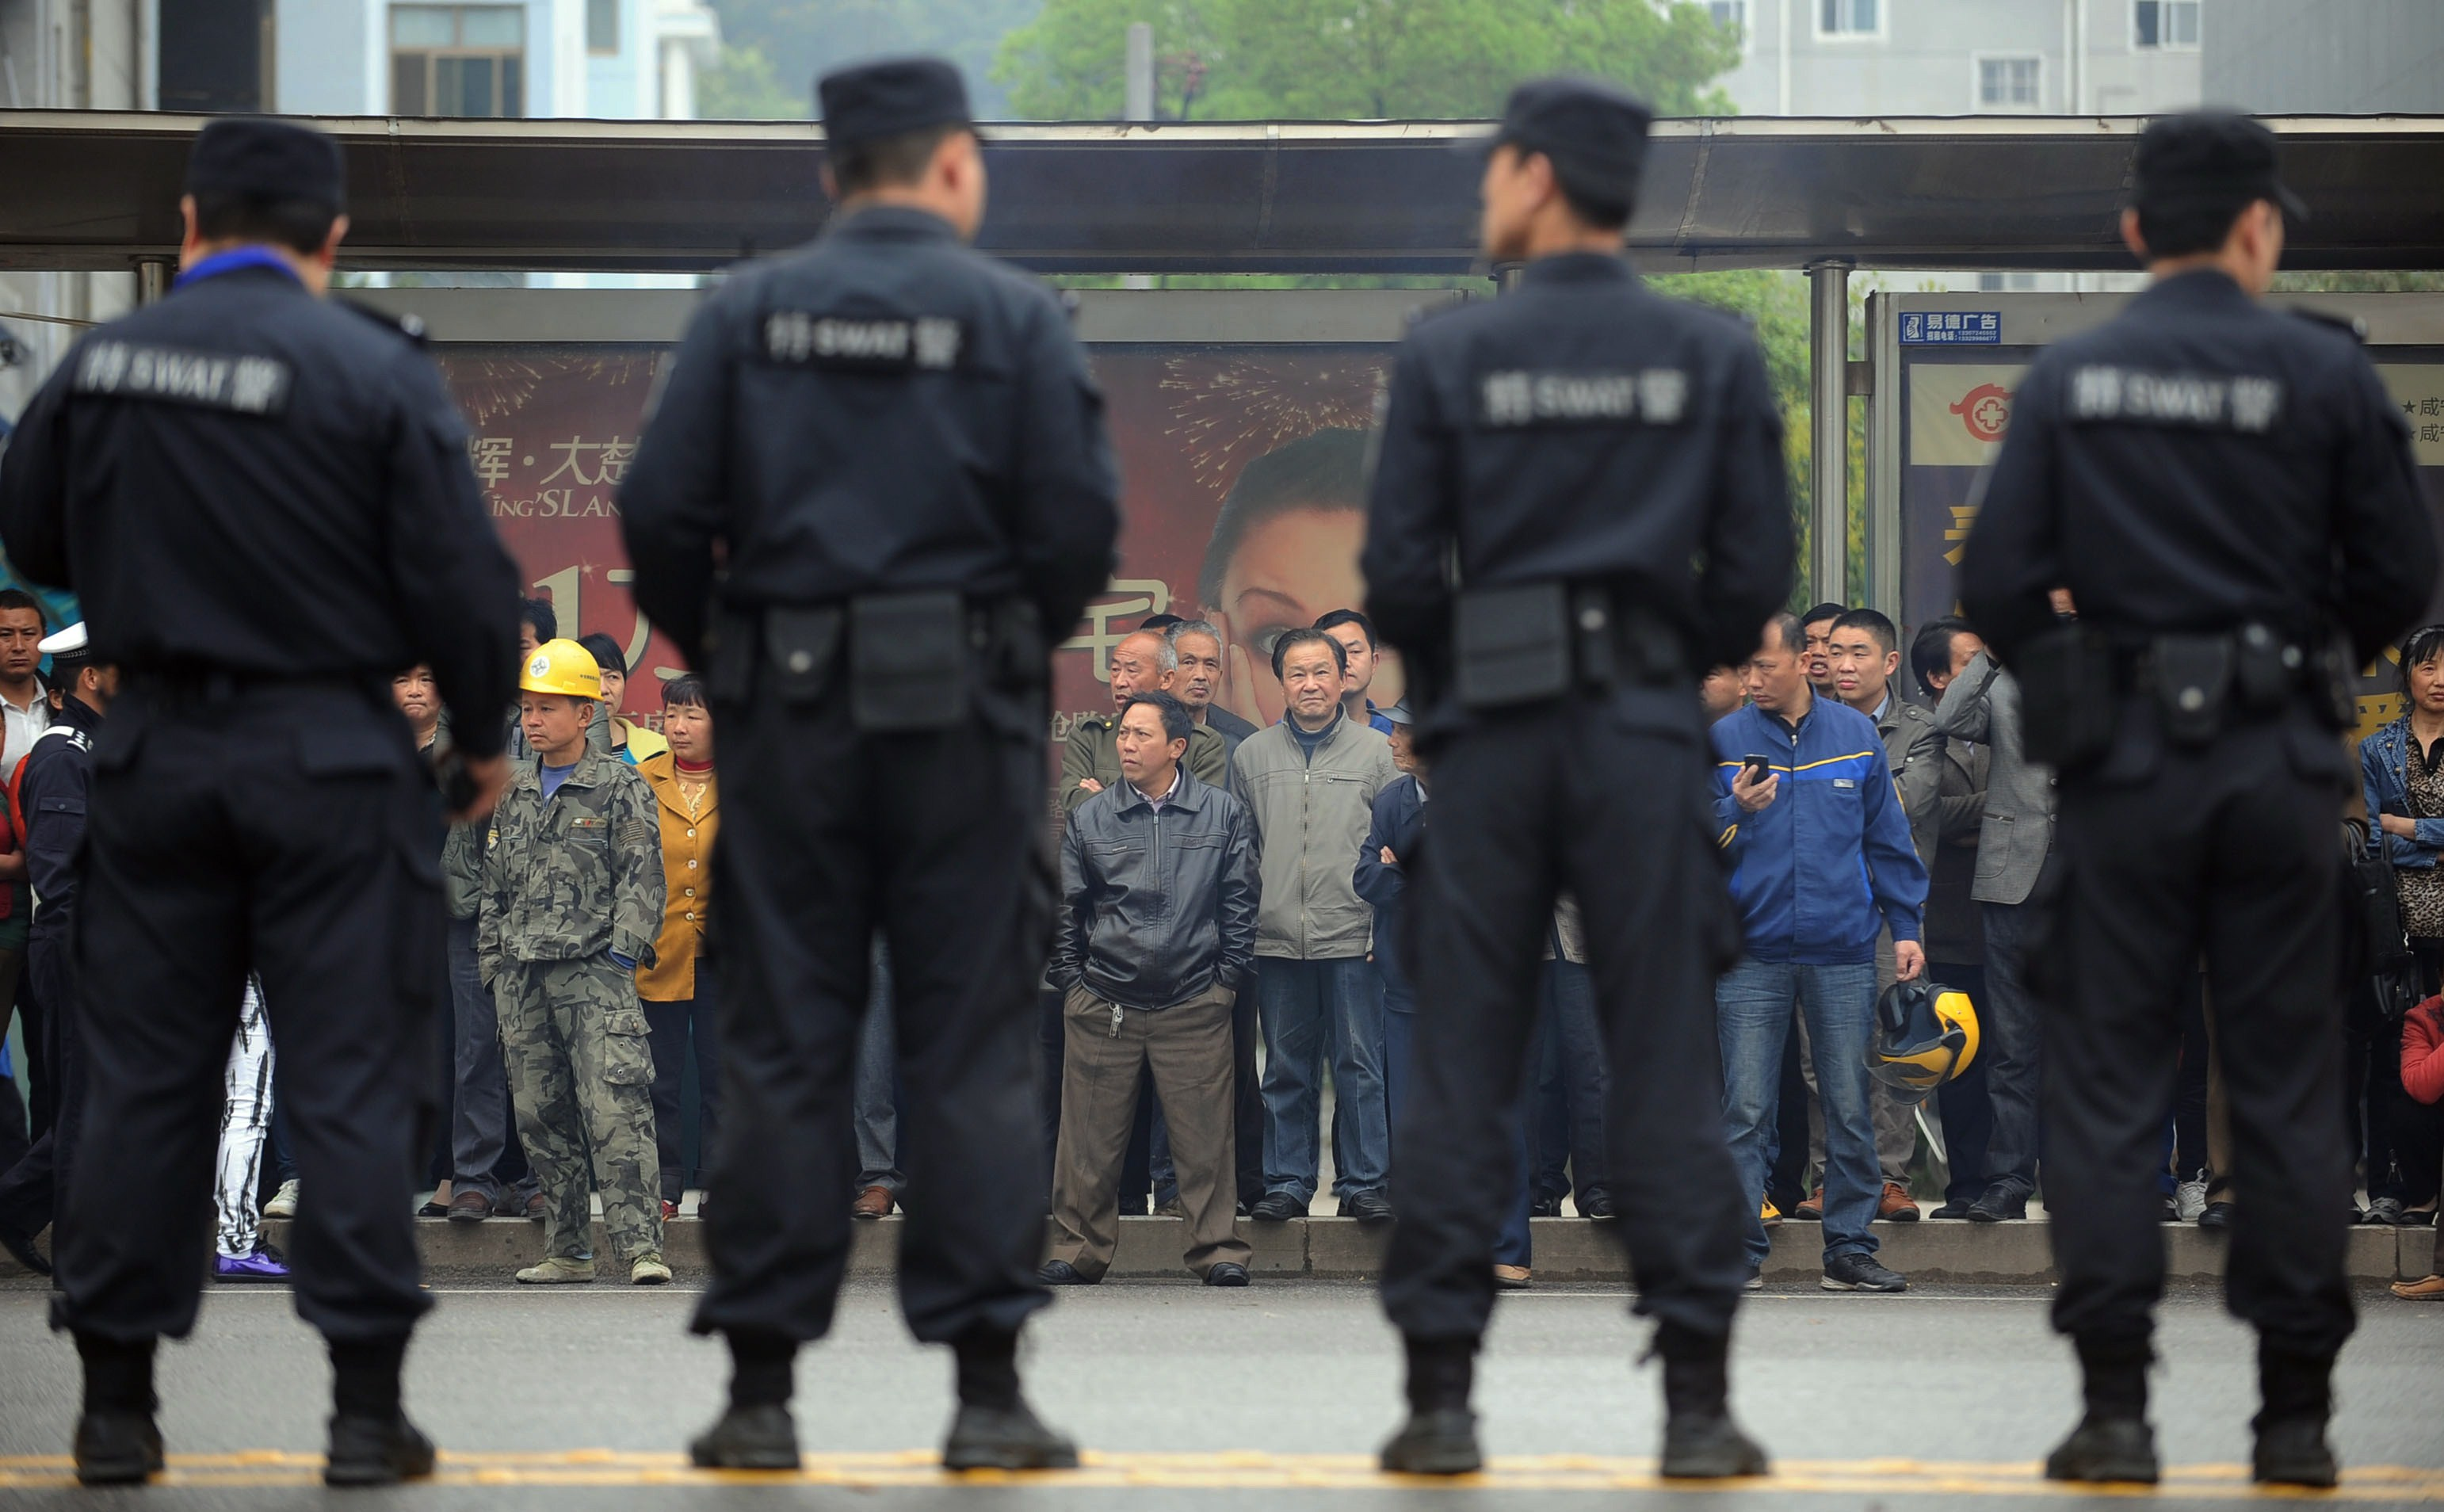 Citizens watch as police stand guard outside the Xianning Intermediate People's Court where Chinese mining tycoon Liu Han stands trial in Xianning, central China's Hubei province on March 31, 2014.